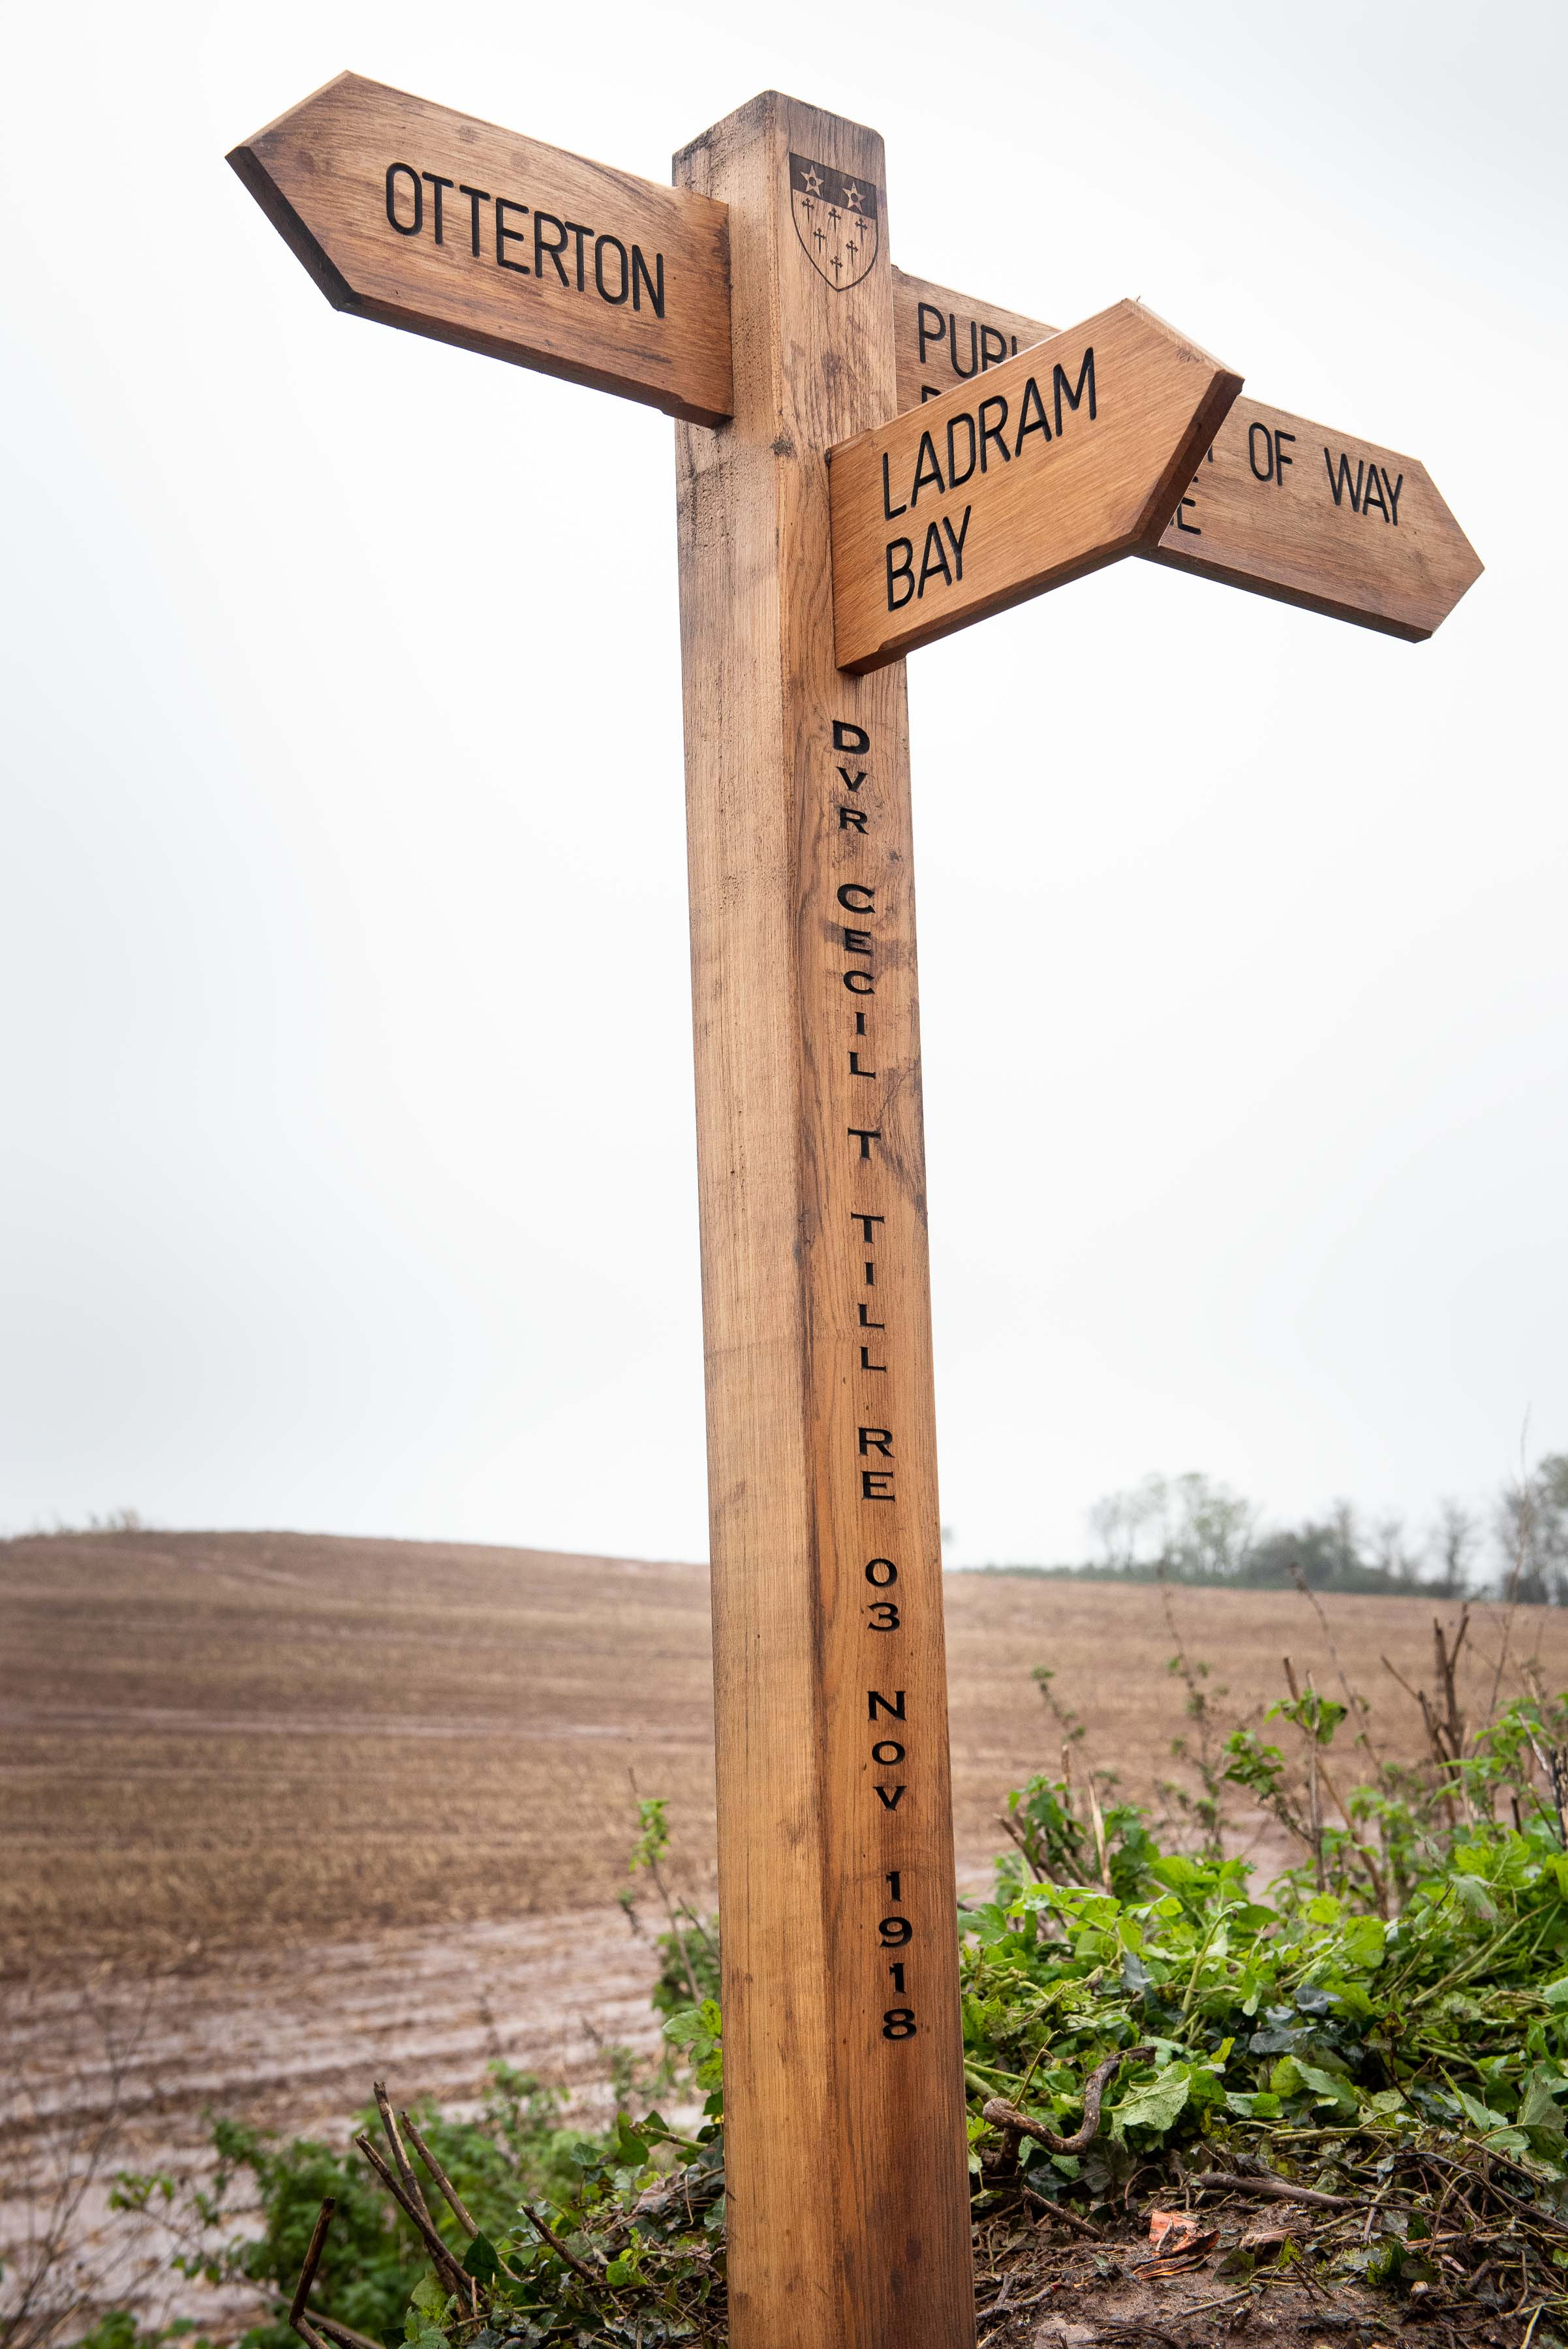 One of the  new waymarker signs that honour the World War One heroes in Otterton. Picture: Guy Newman/Rekord Media